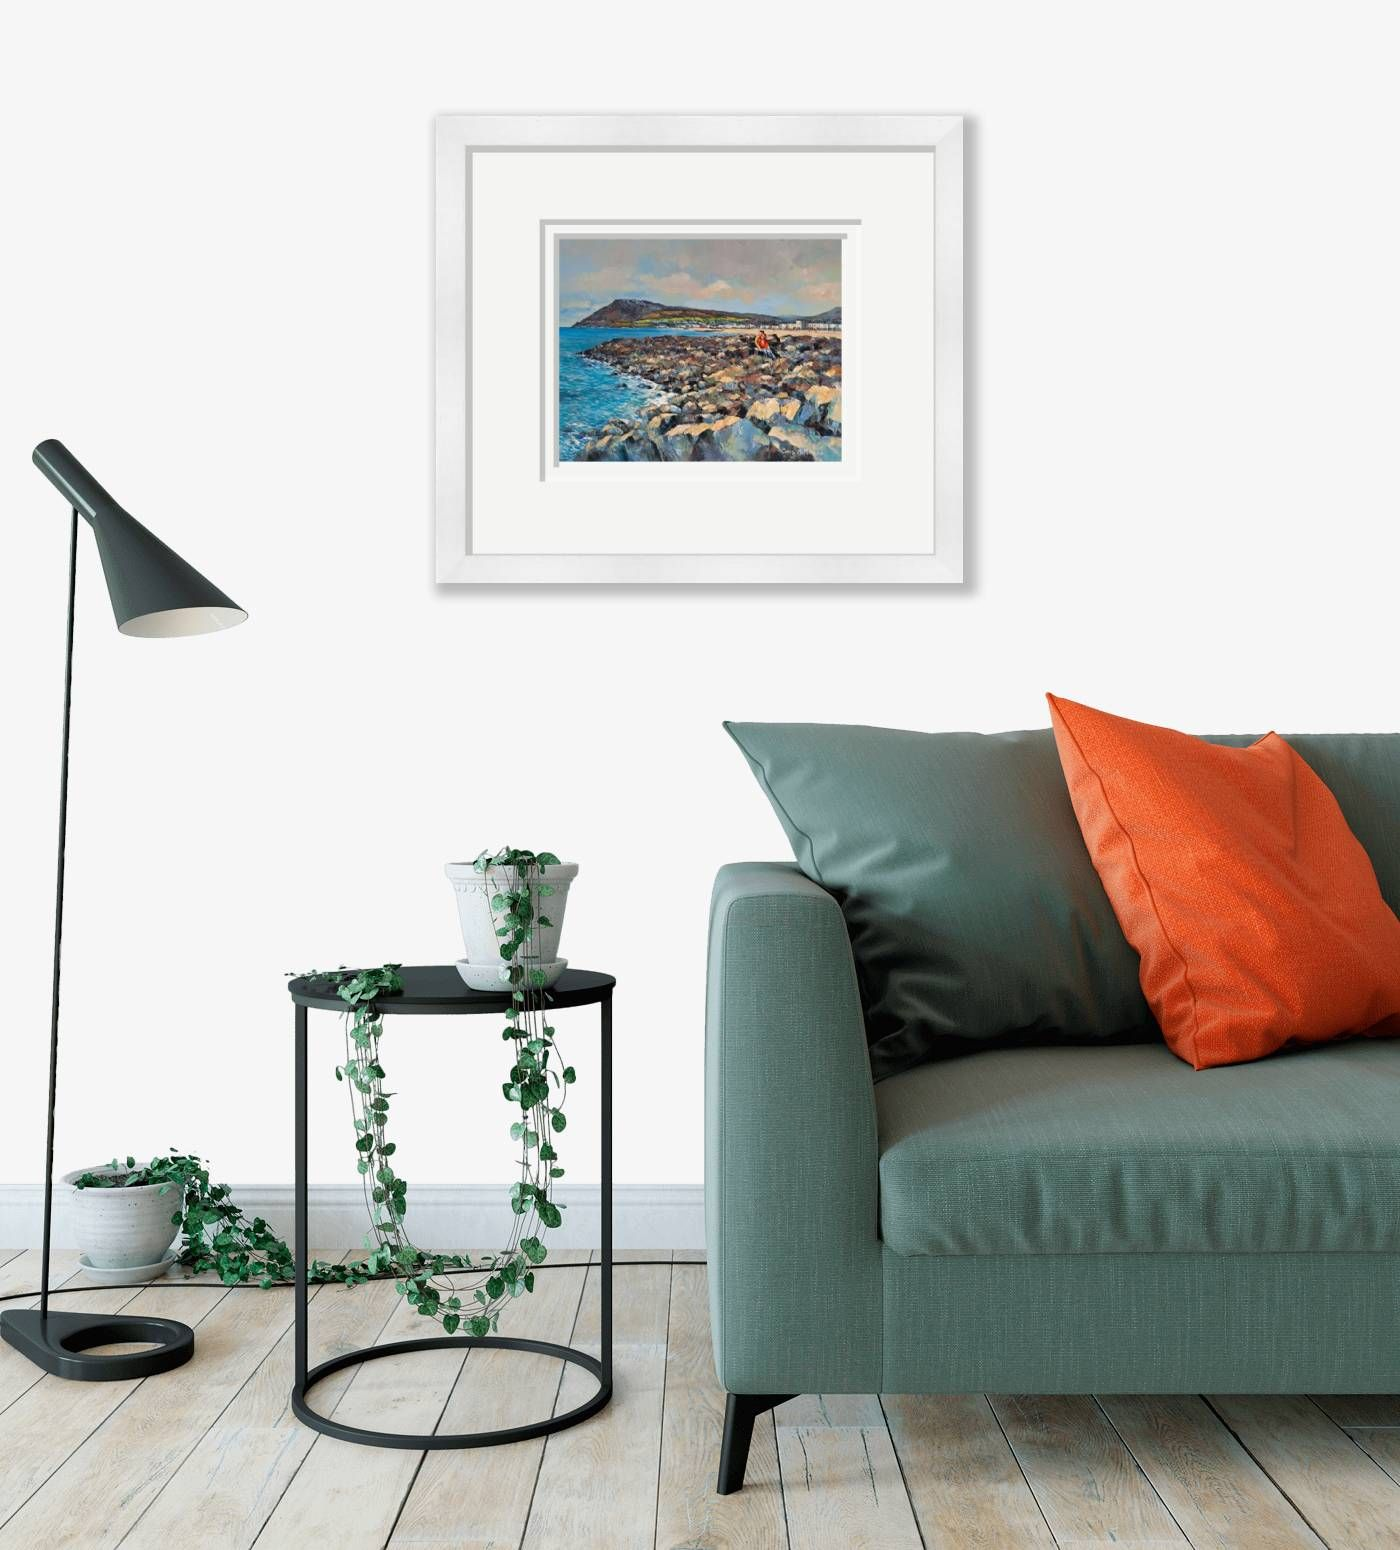 Large framed - Looking out at Sea - 489 by Chris McMorrow